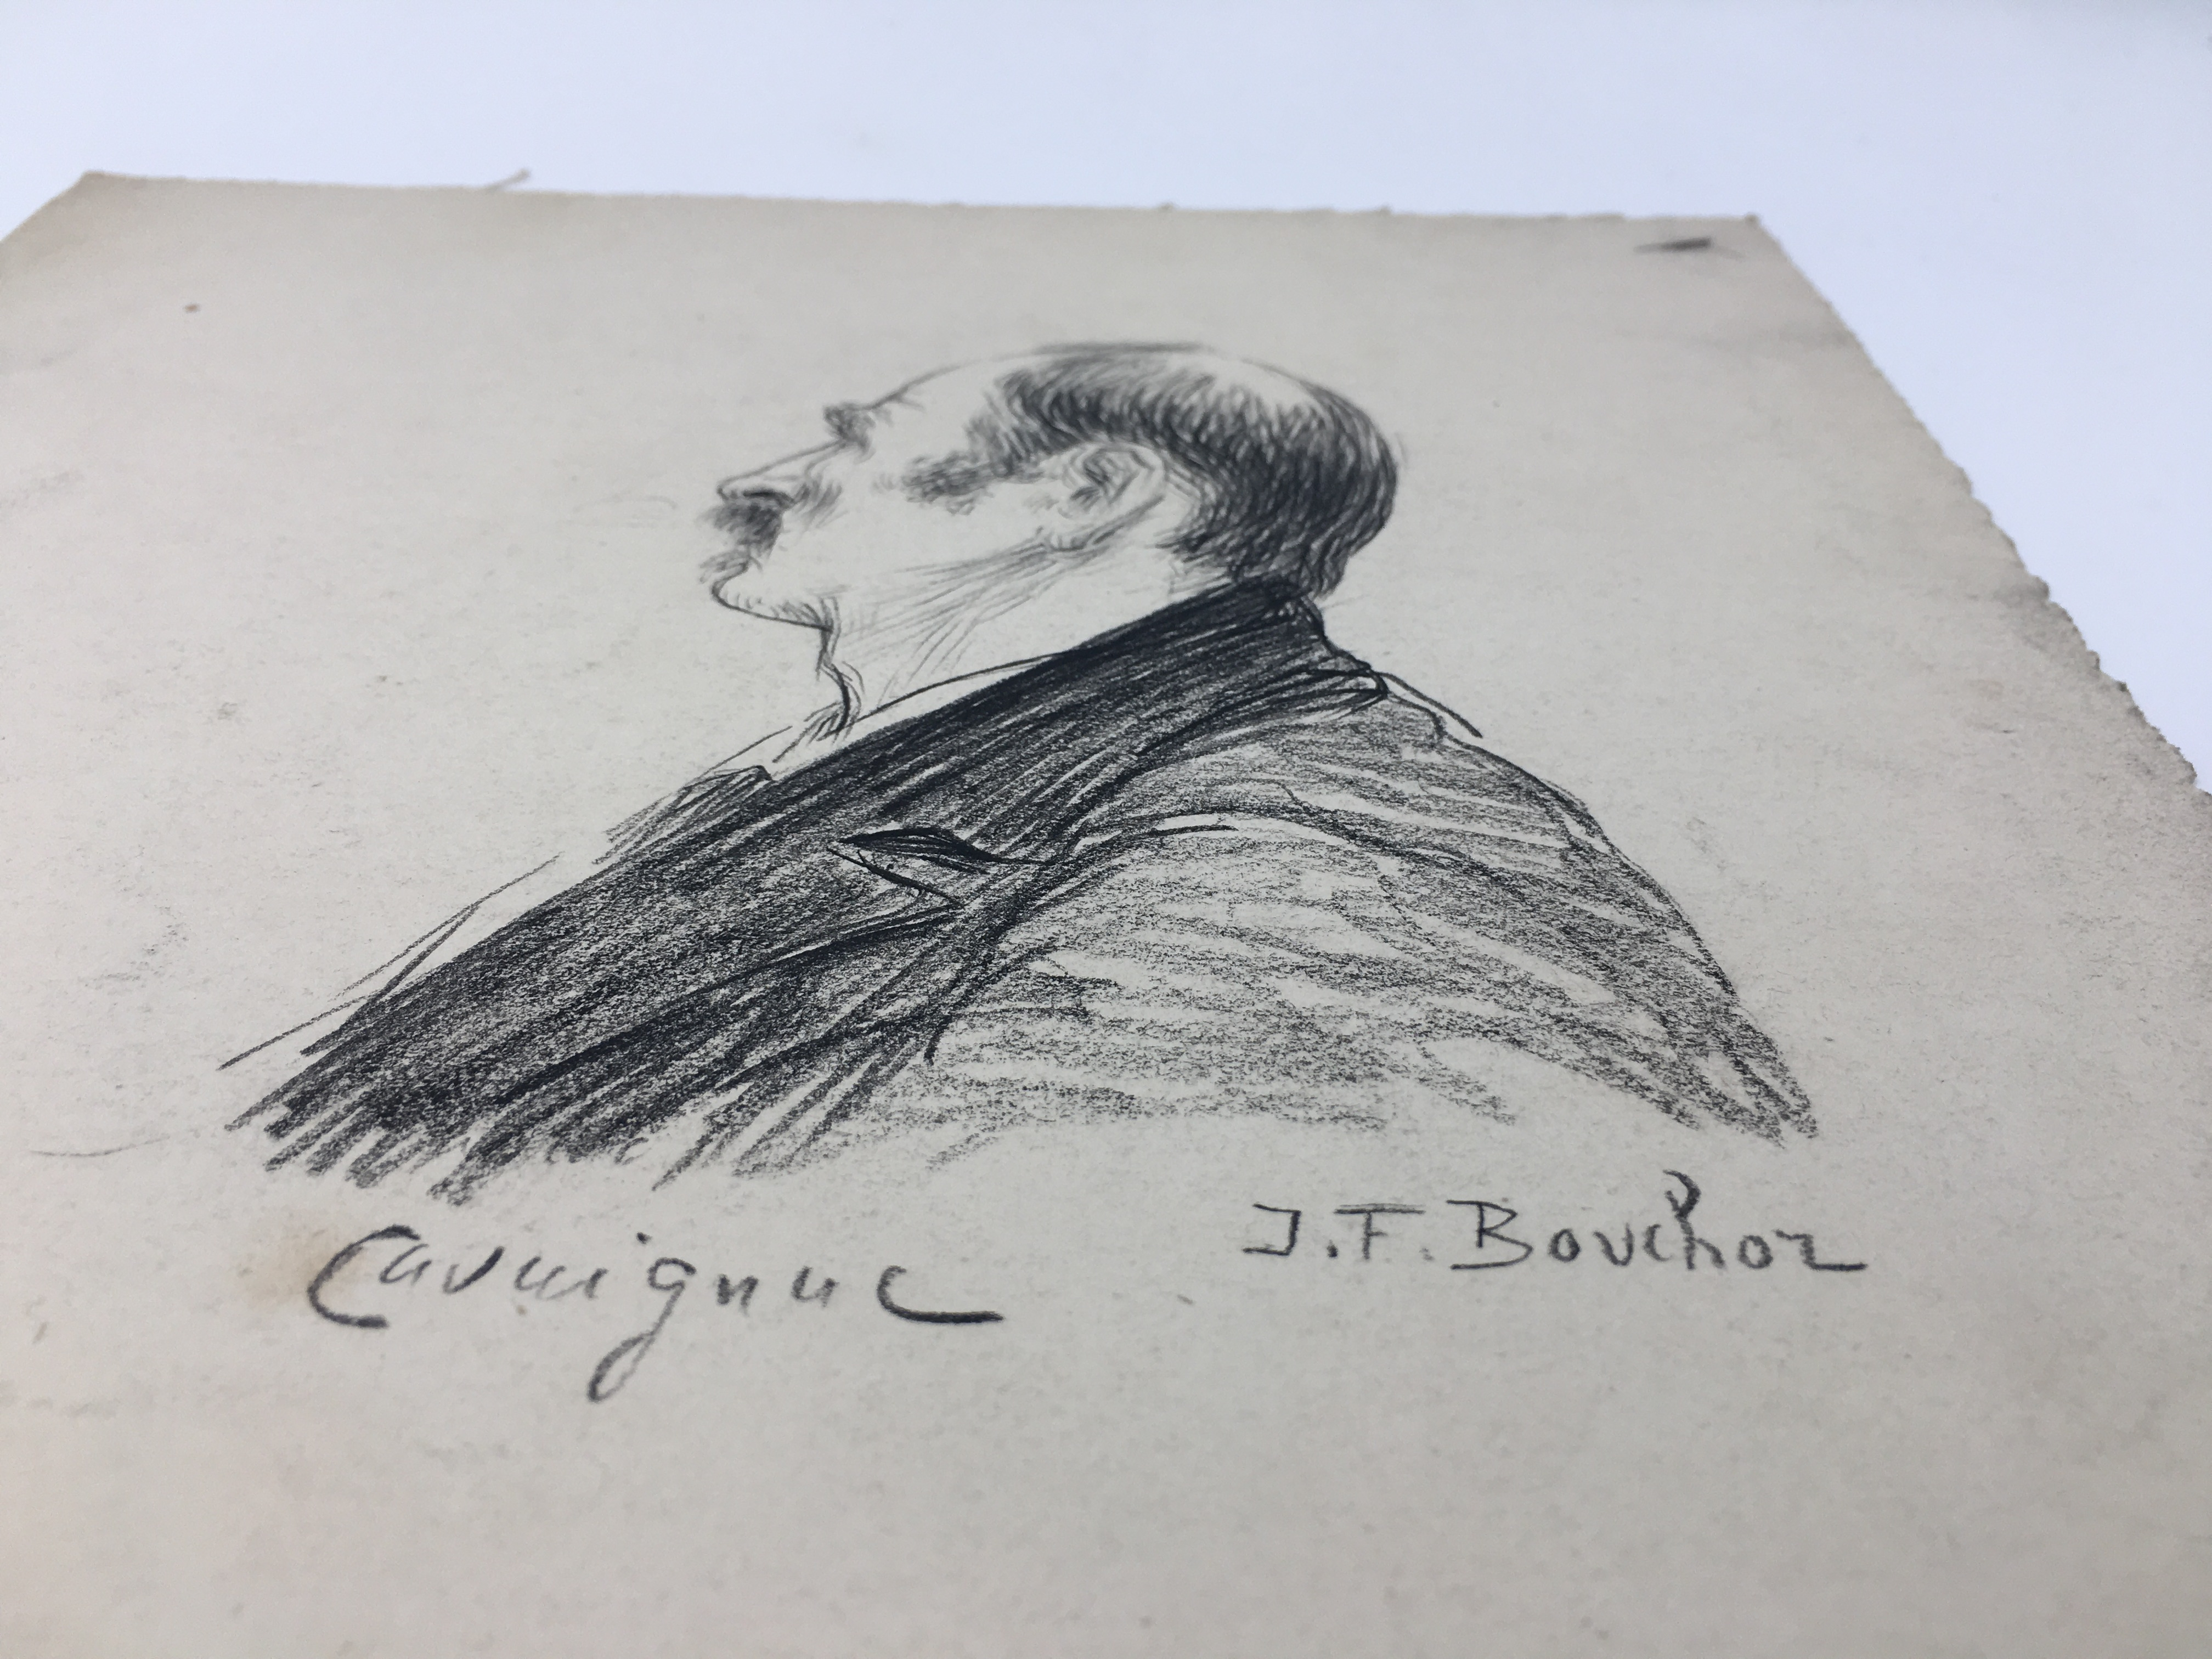 J'Accuse Newspaper, Emile Zola Quote, Signed Dreyfus Portrait, Rare Trial Drawings & Schwartzkoppen - Image 46 of 74